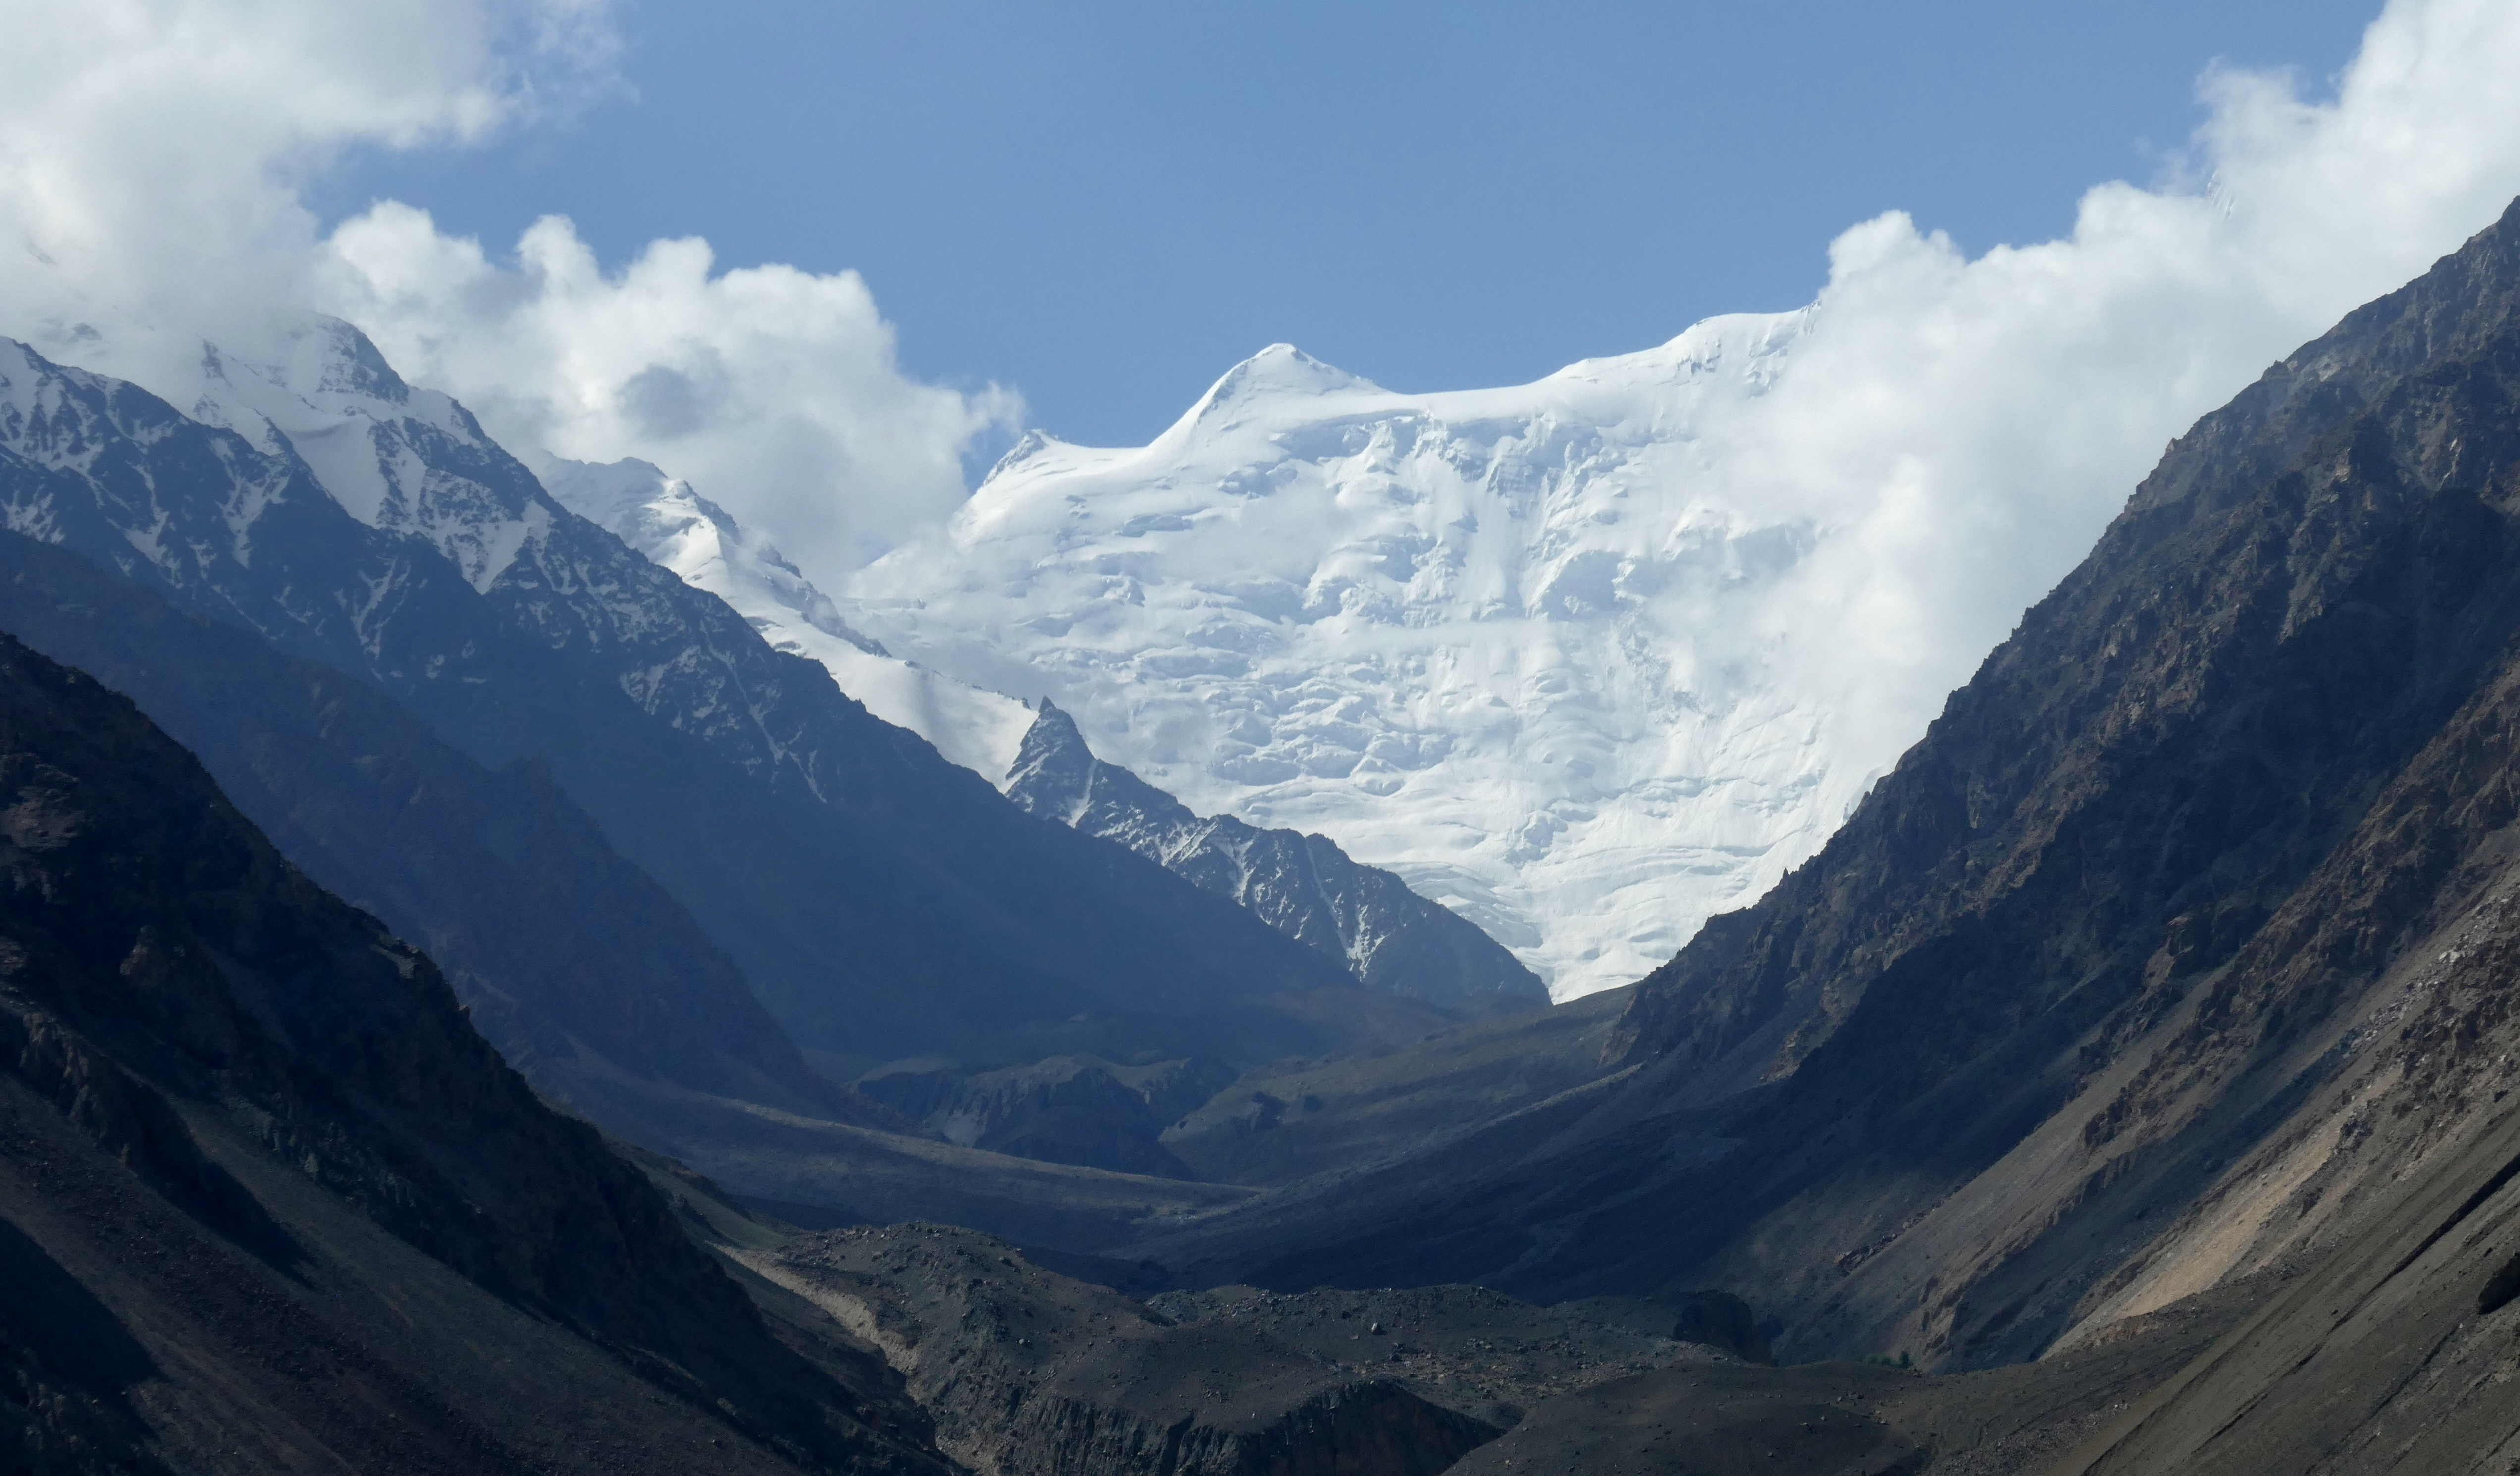 Three Countries In One Picture: I Took It In Tajikistan, Across The Border  Into The Wakhan Corridor. The Hindukush Range U2013 In The Picture U2013 Marks The  Border ...